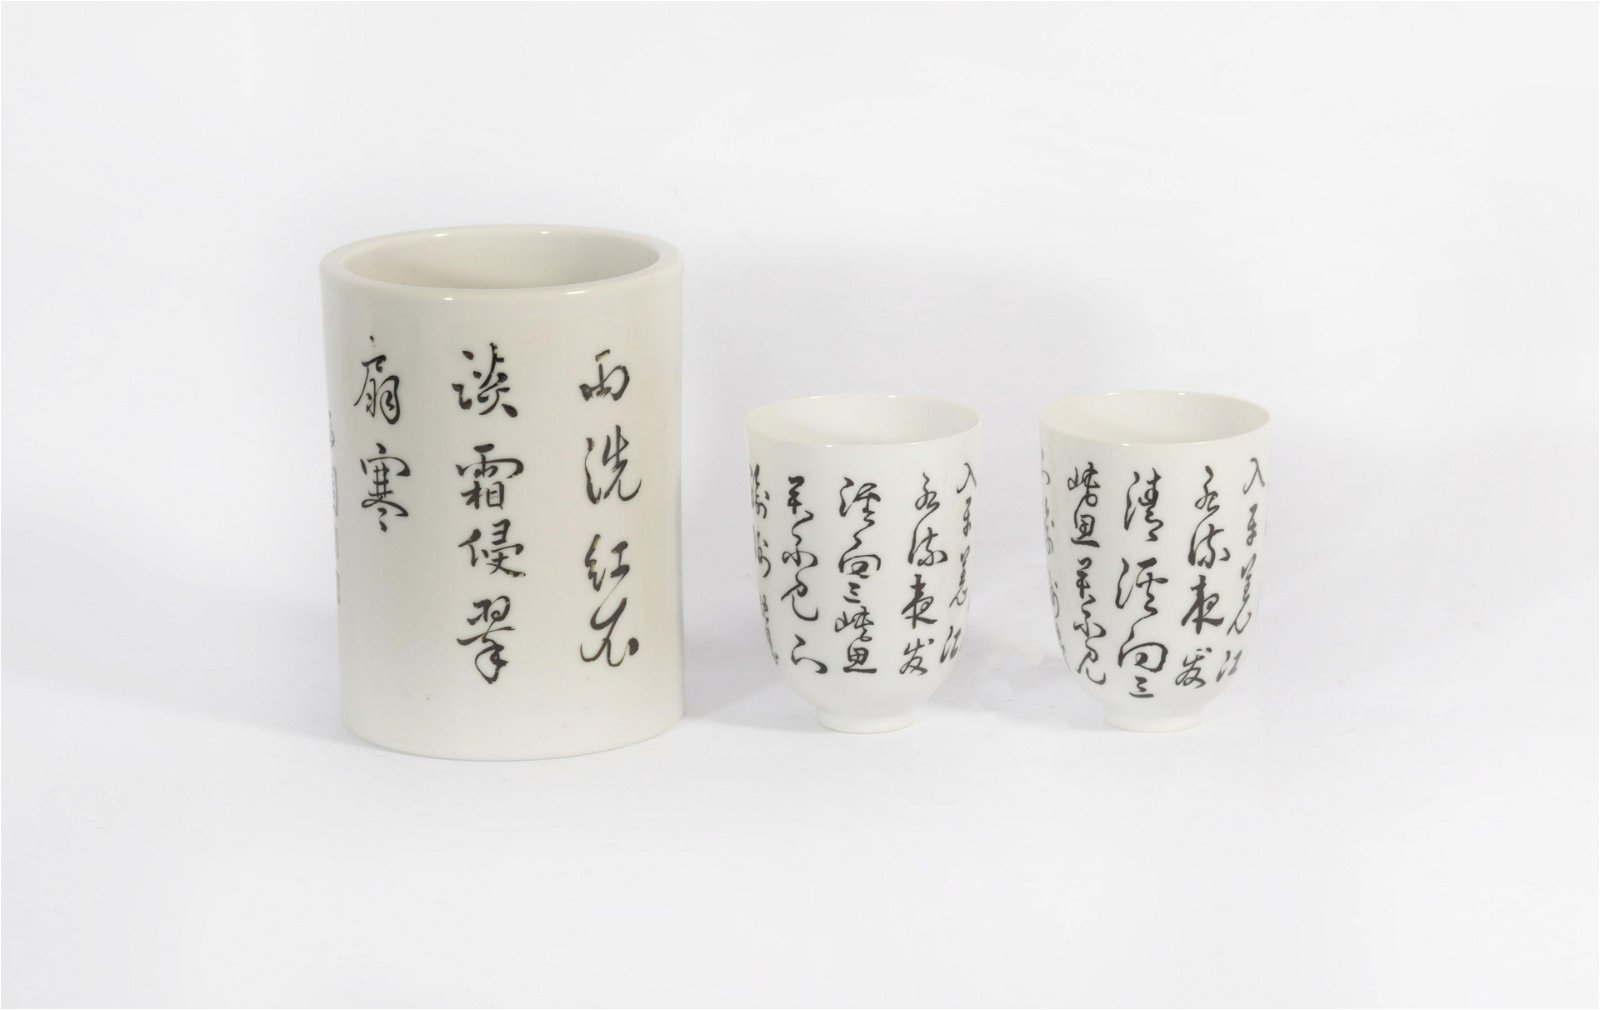 Three pieces of Kangxi porcelain in Qing Dynasty